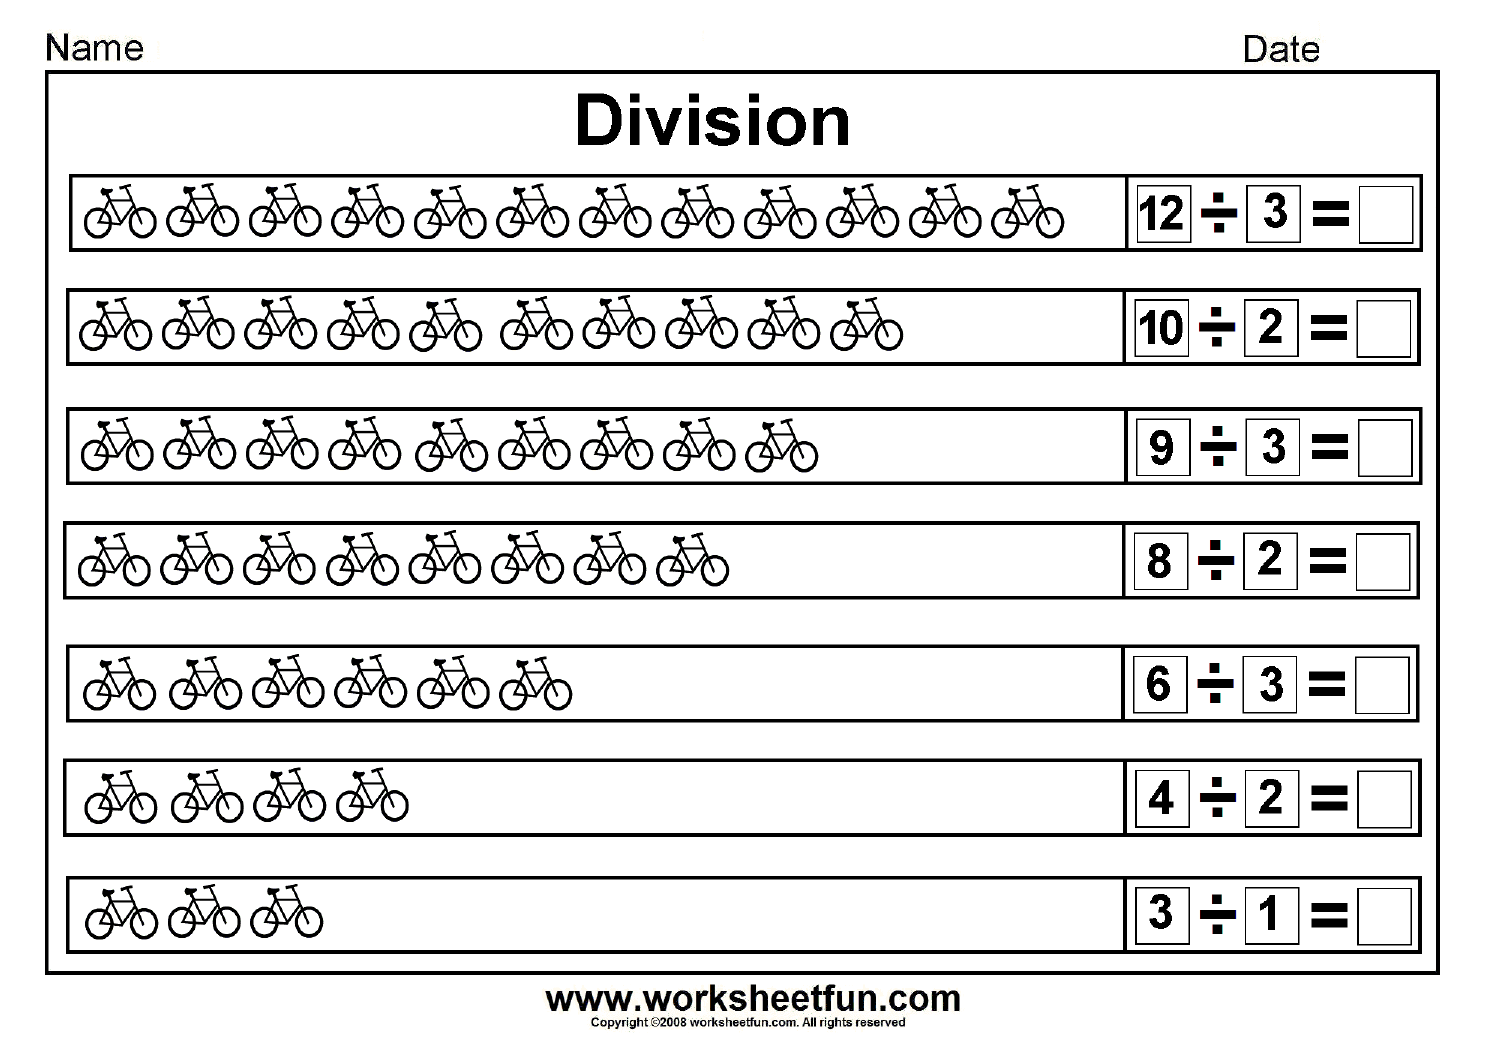 Worksheetfun Com 2nd : Division worksheets on worksheetfun kiddos learning